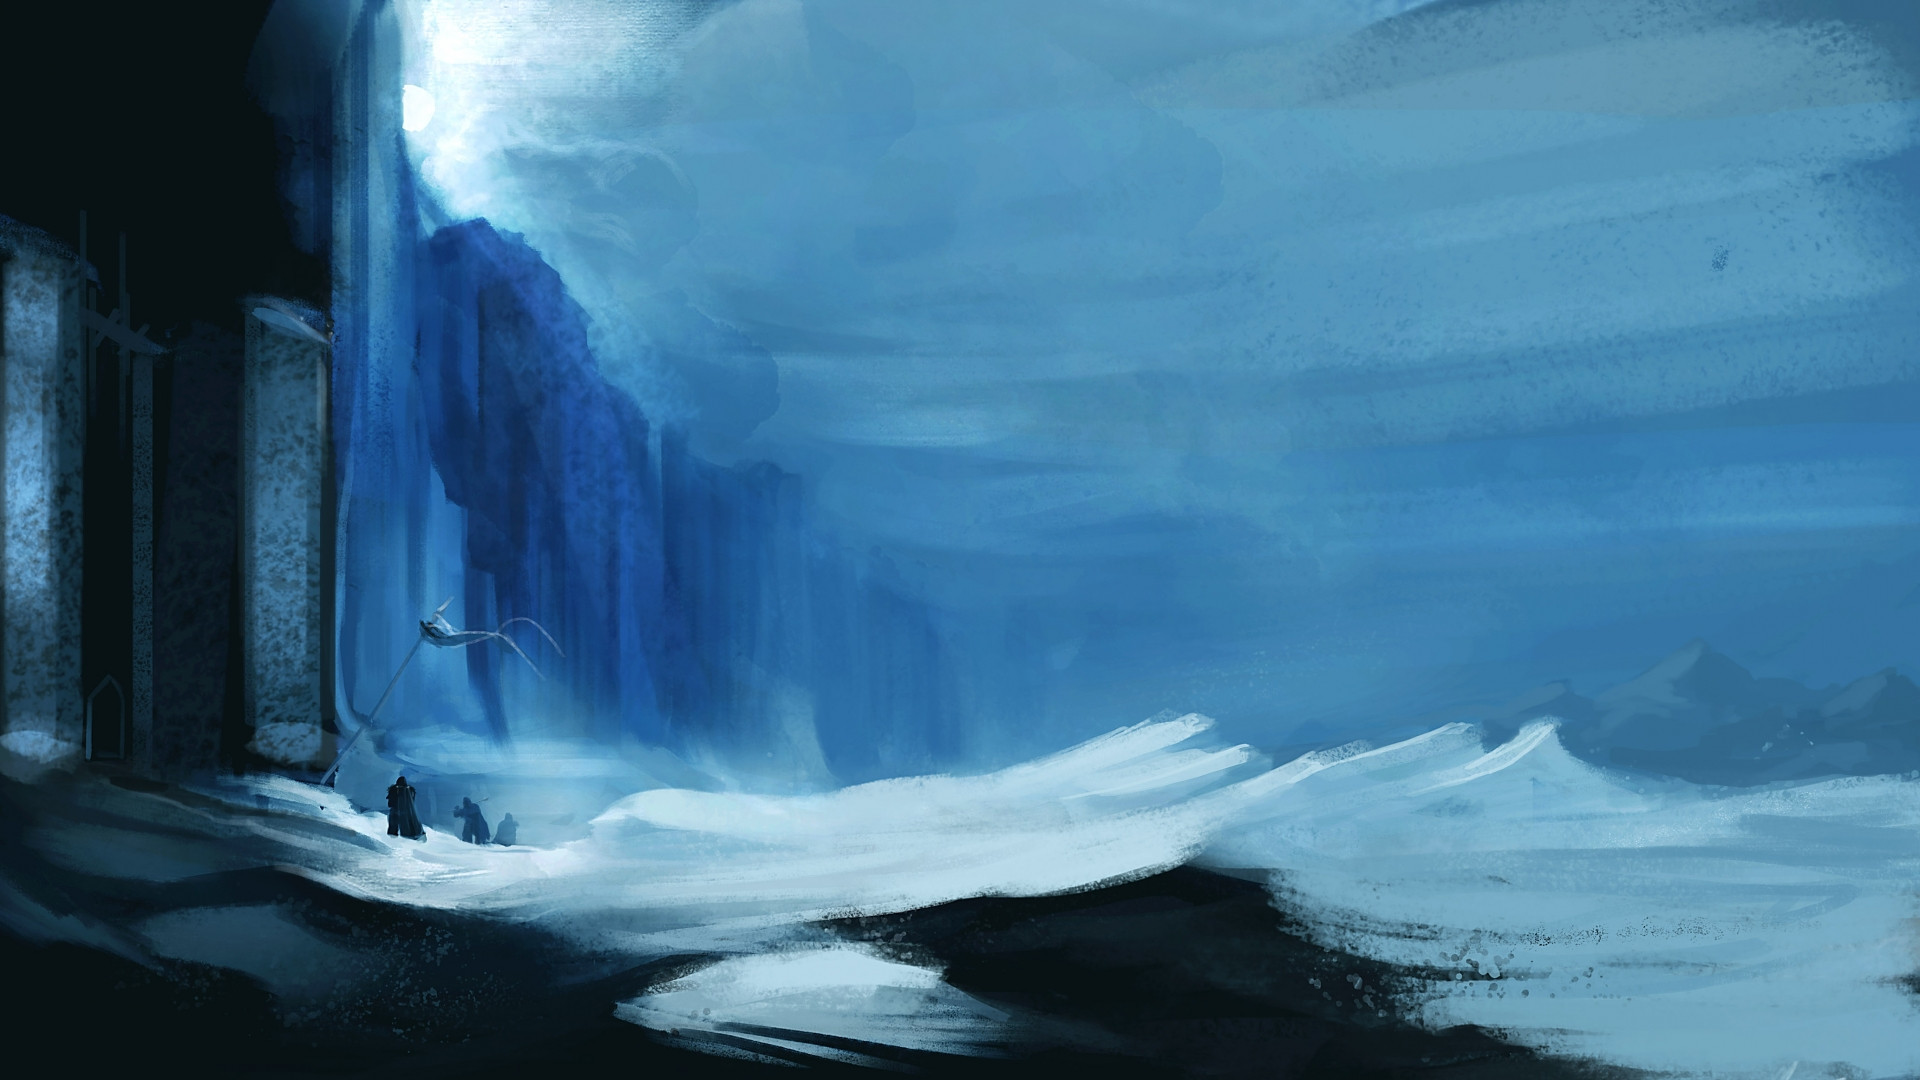 … painting of the Wall …